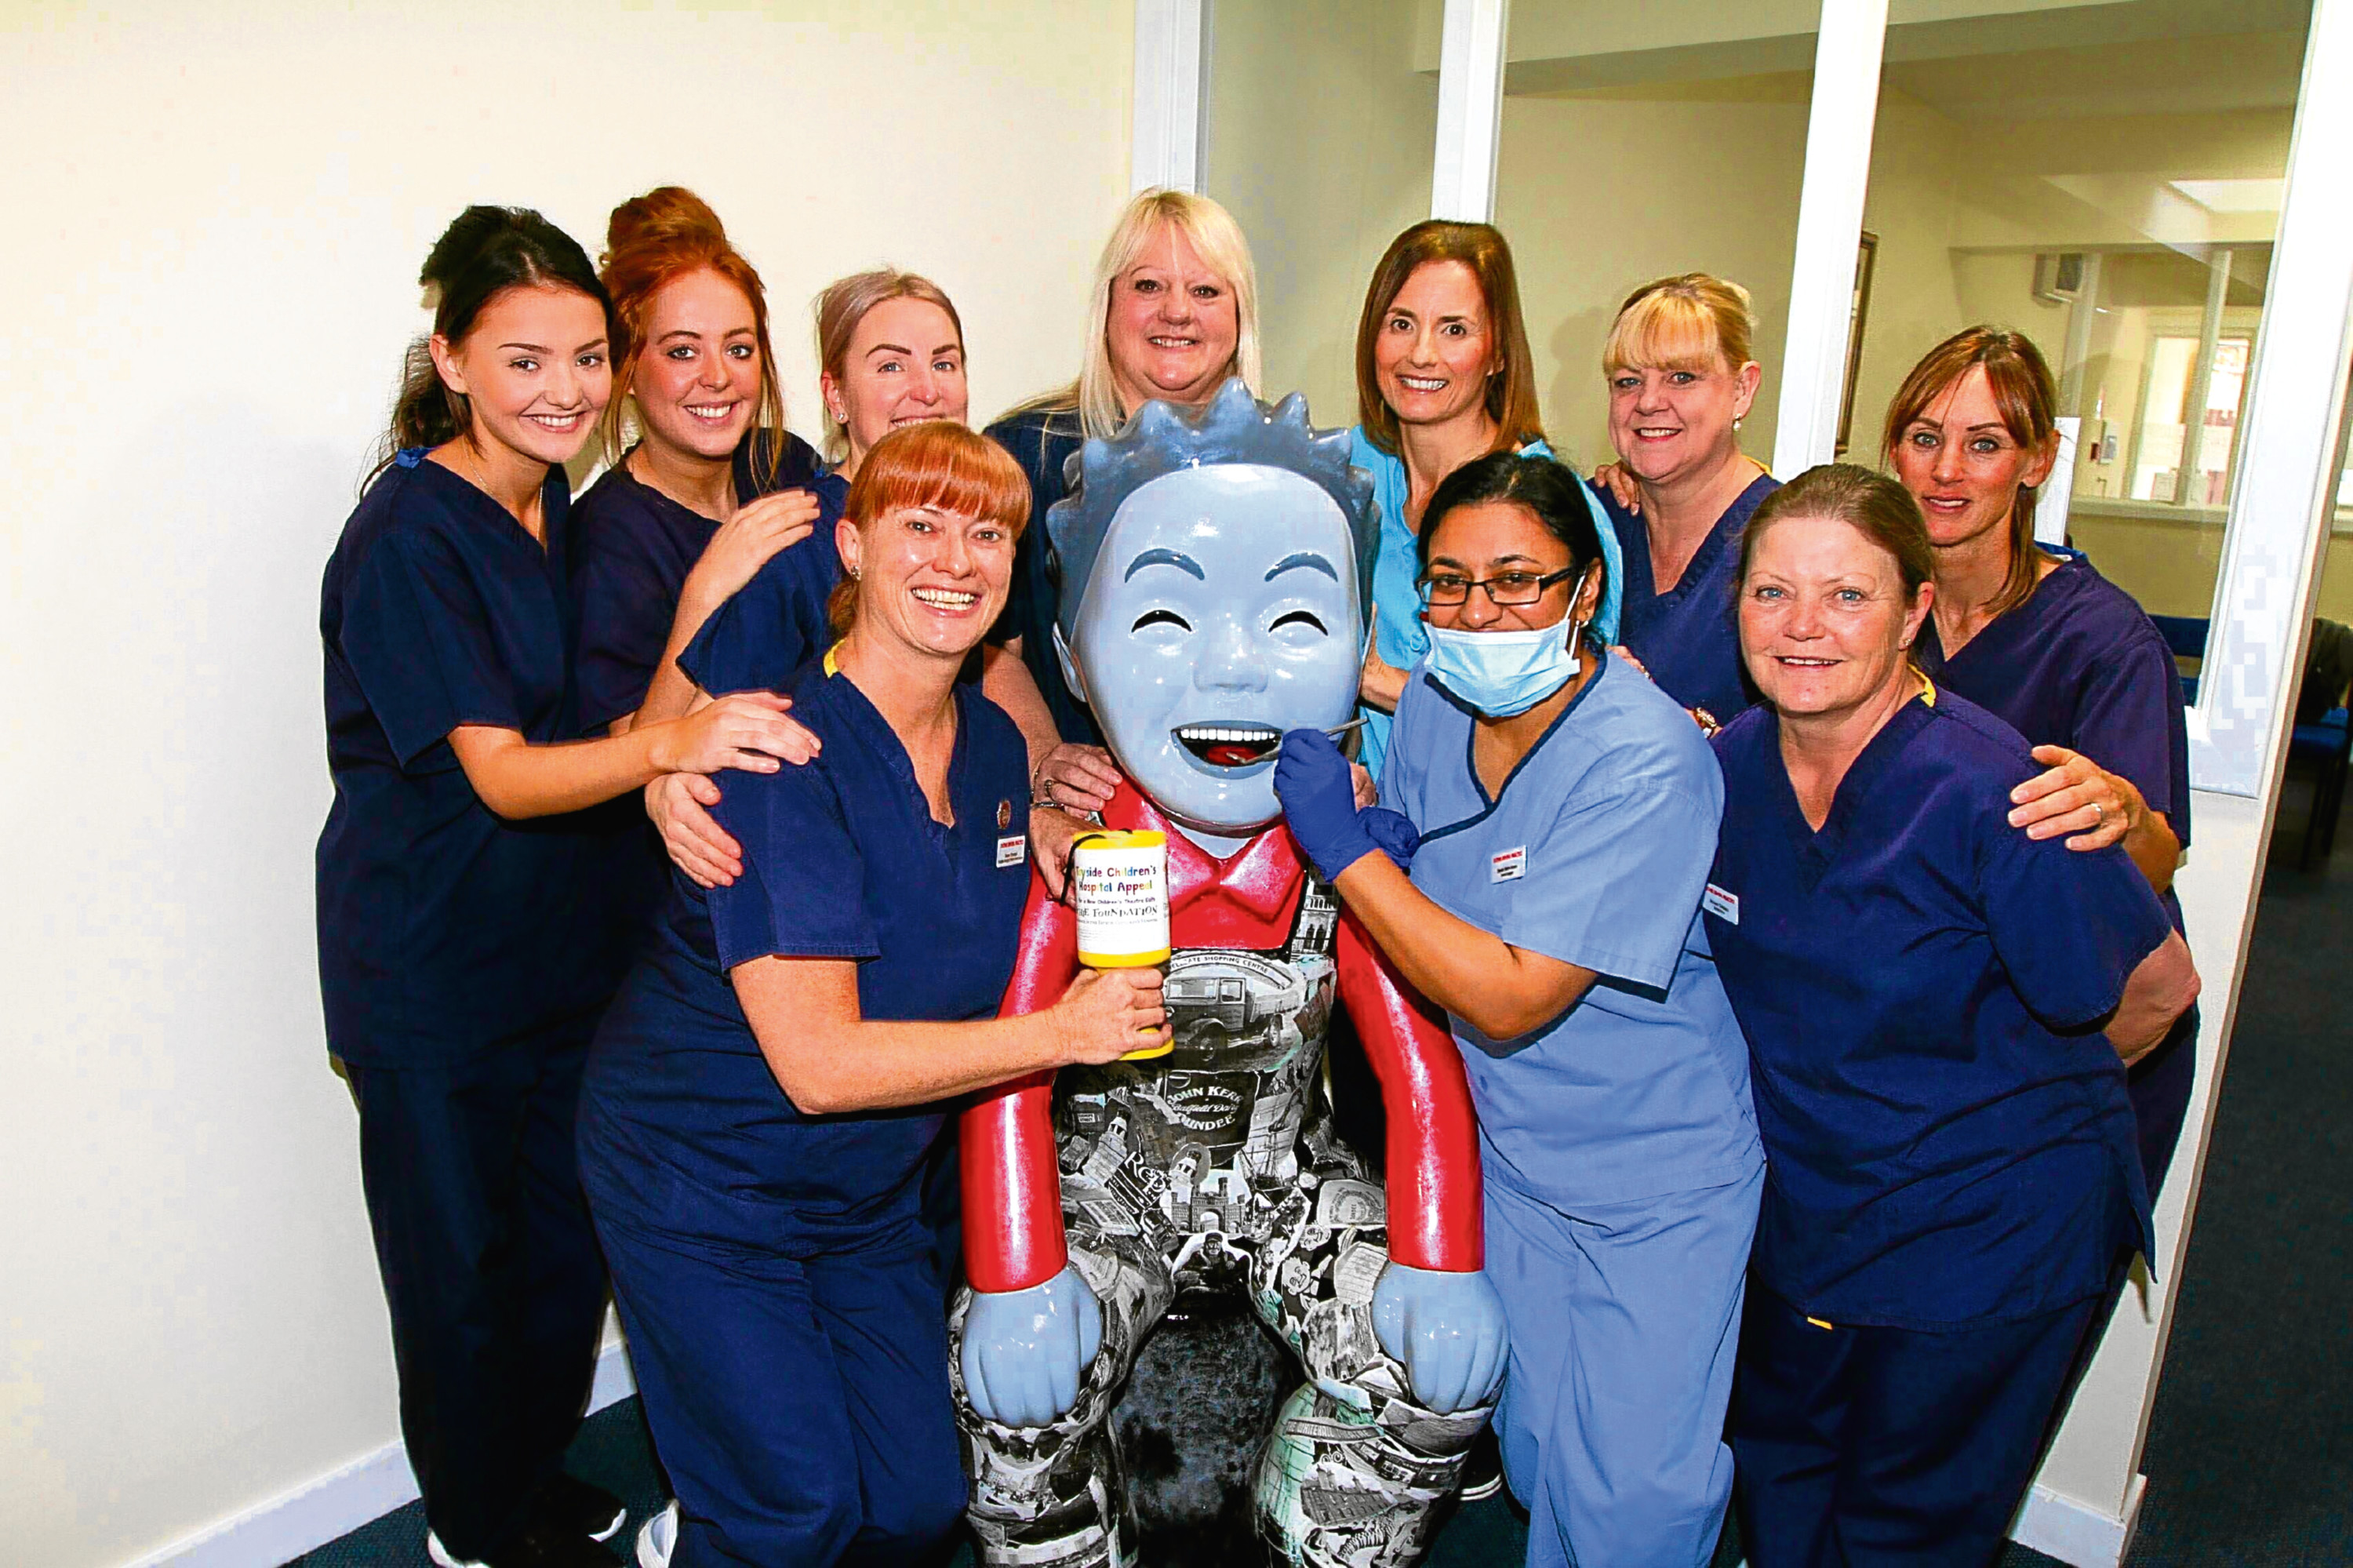 Past and Present Oor Wullie at Duthie Dental Practice along with staff members.